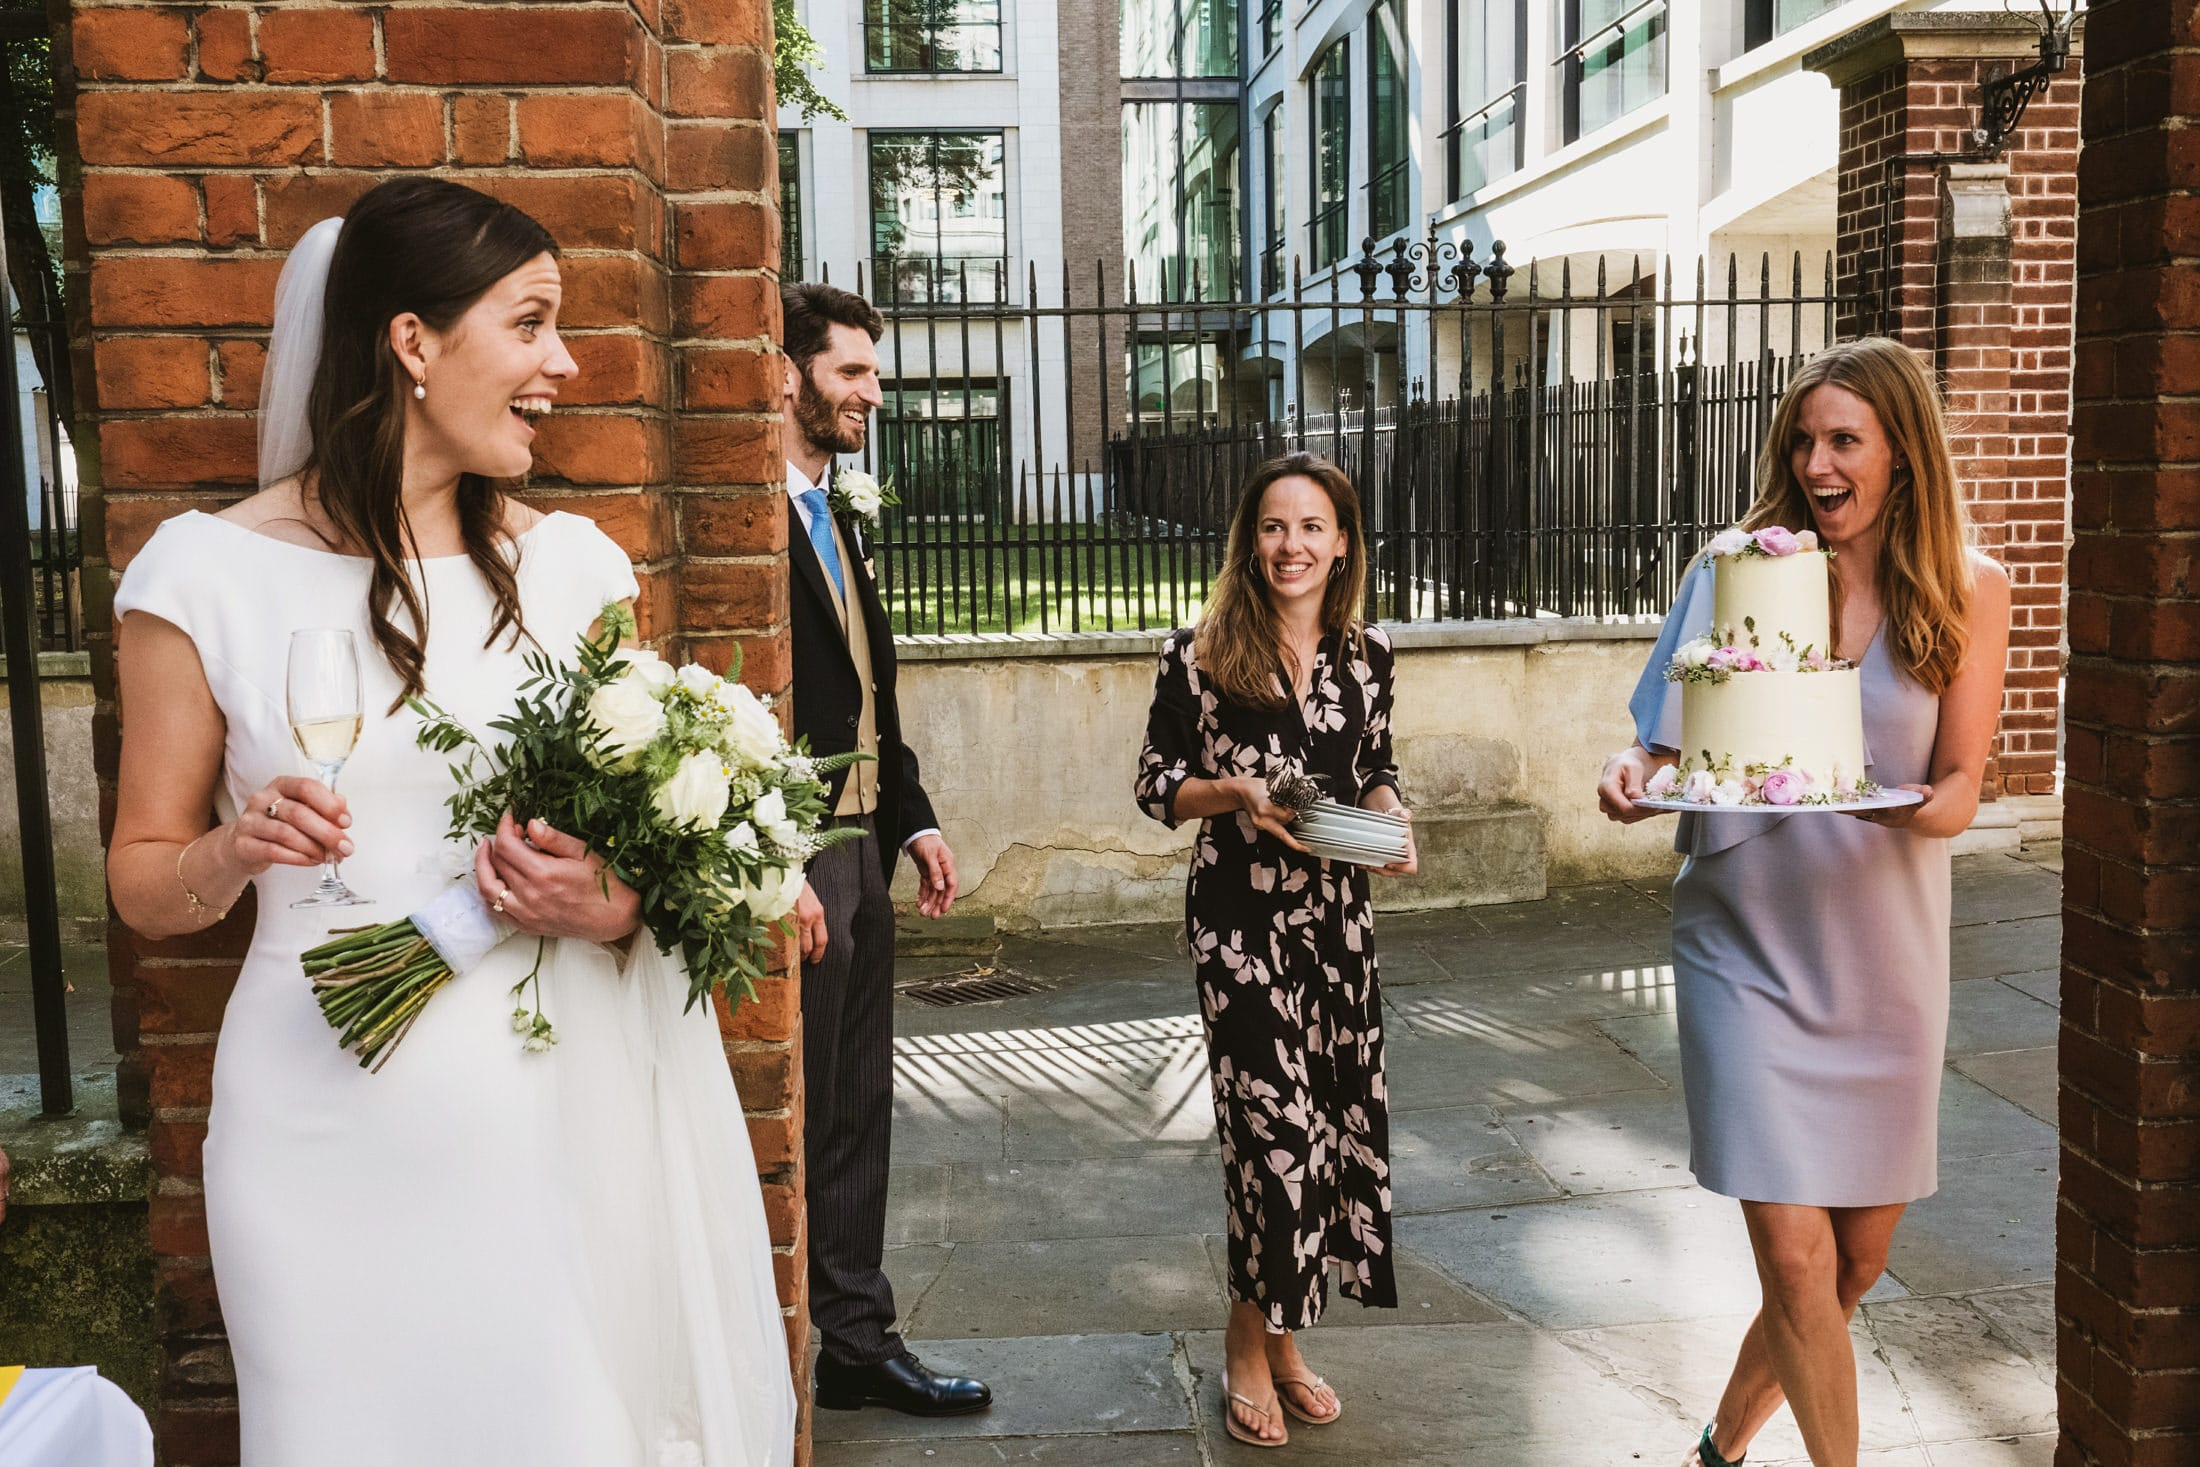 A tiered wedding cake is unexpectedly revealed by a guest during an intimate outdoor micro wedding in London